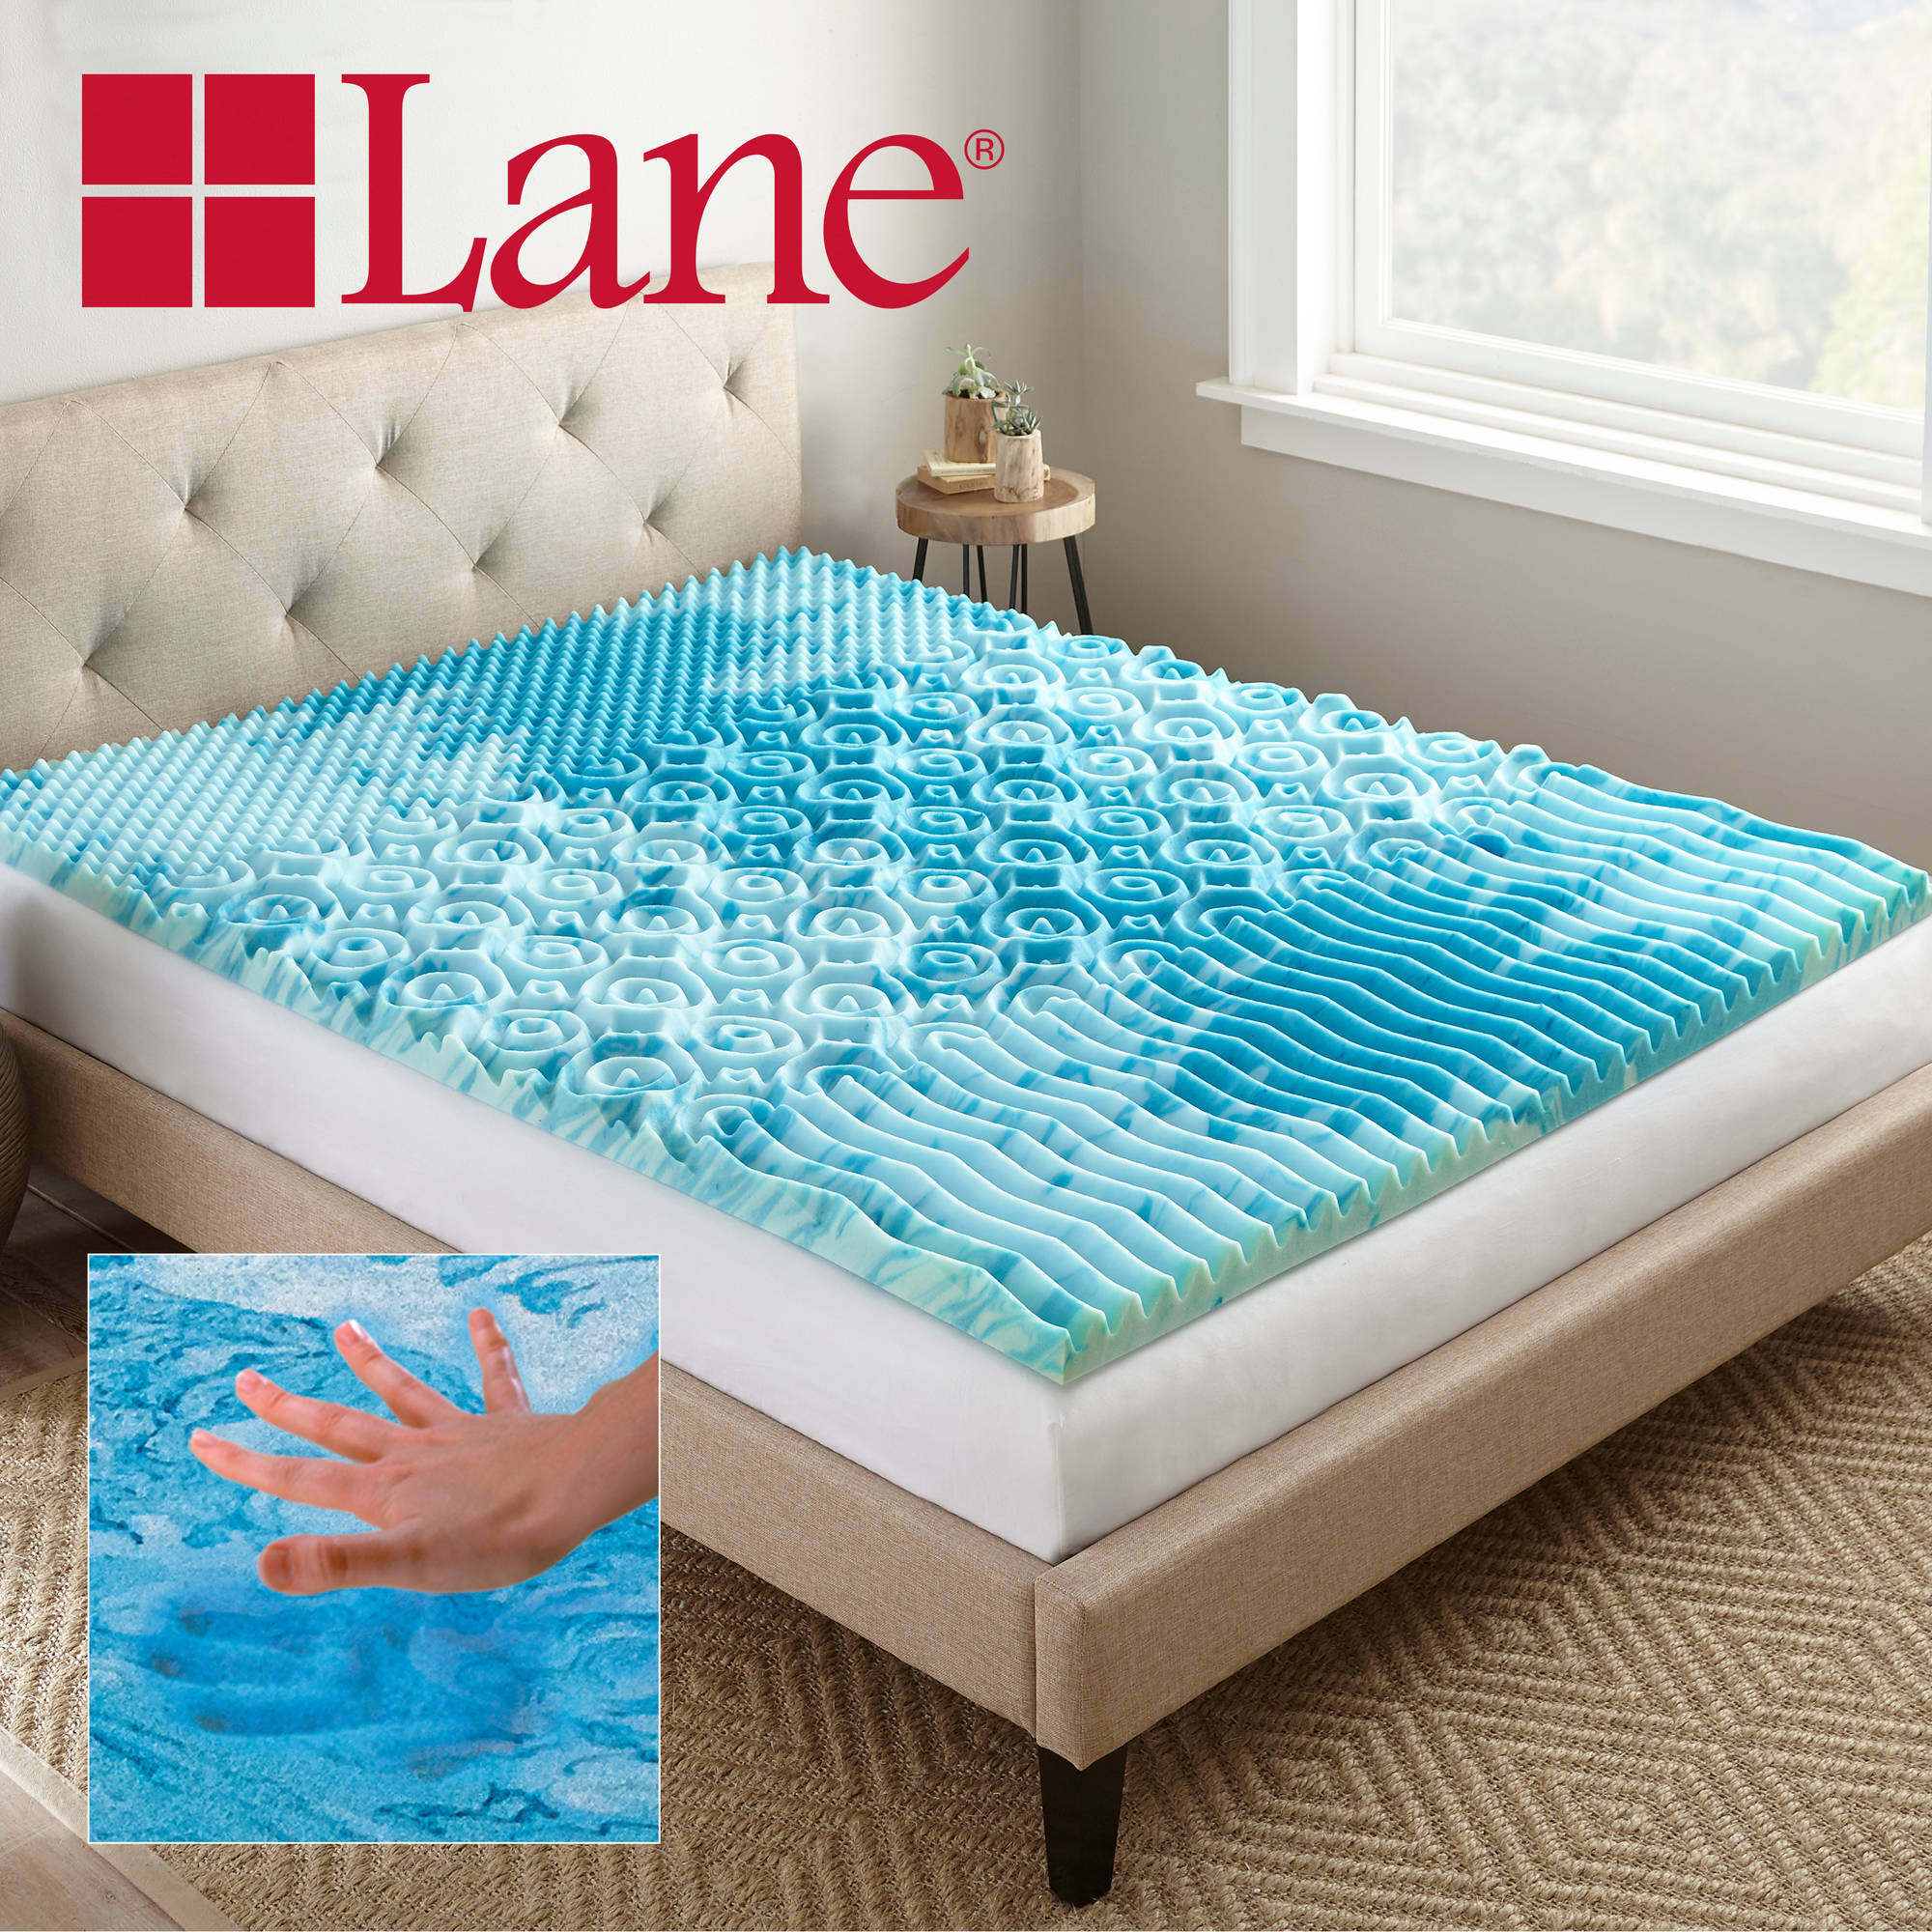 "Lane 2"" Cooling GelLux Memory Foam Gel Mattress Topper Multiple"